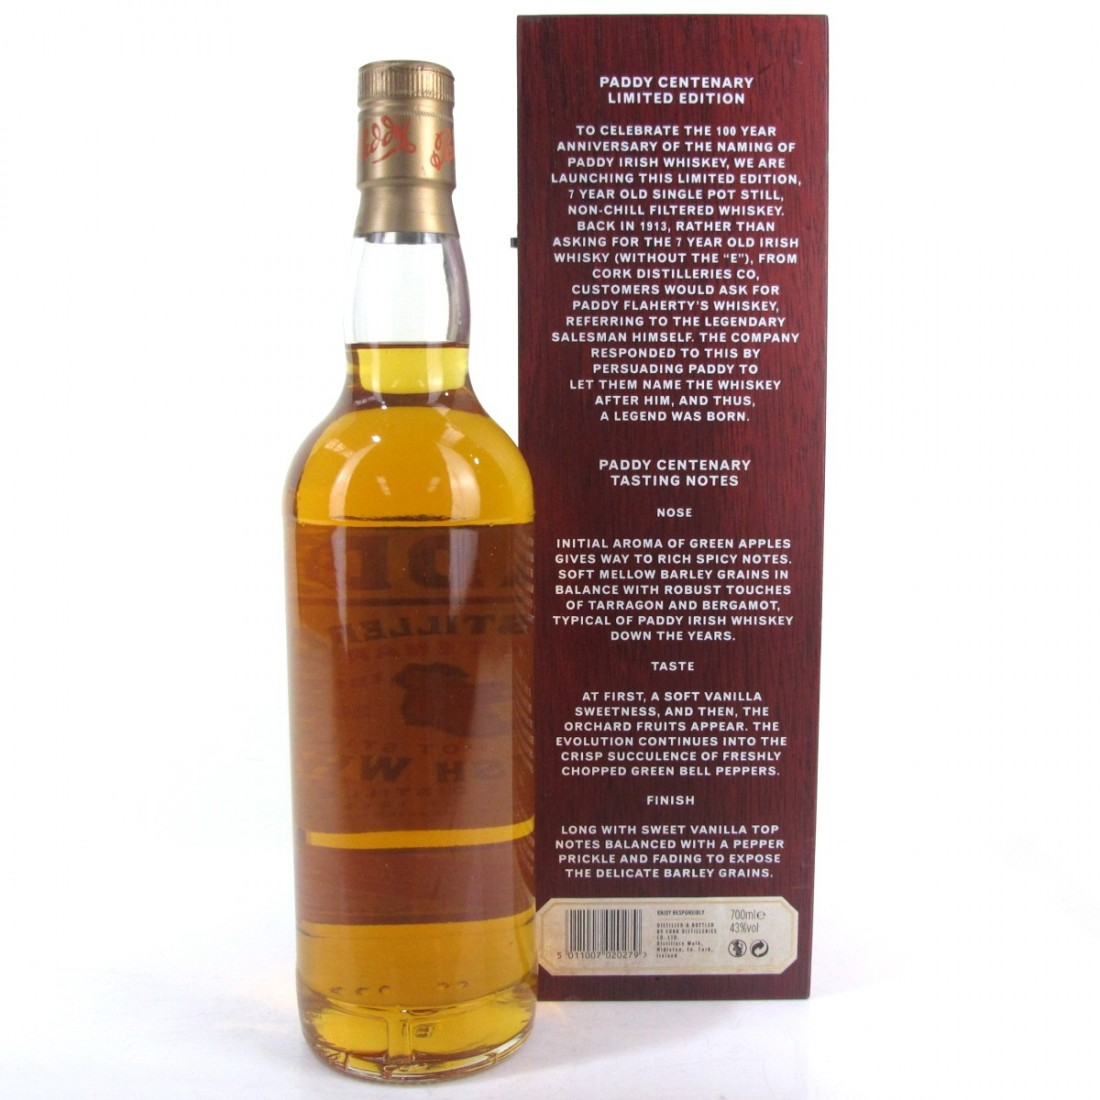 Paddy 7 Year Old Centenary Limited Edition